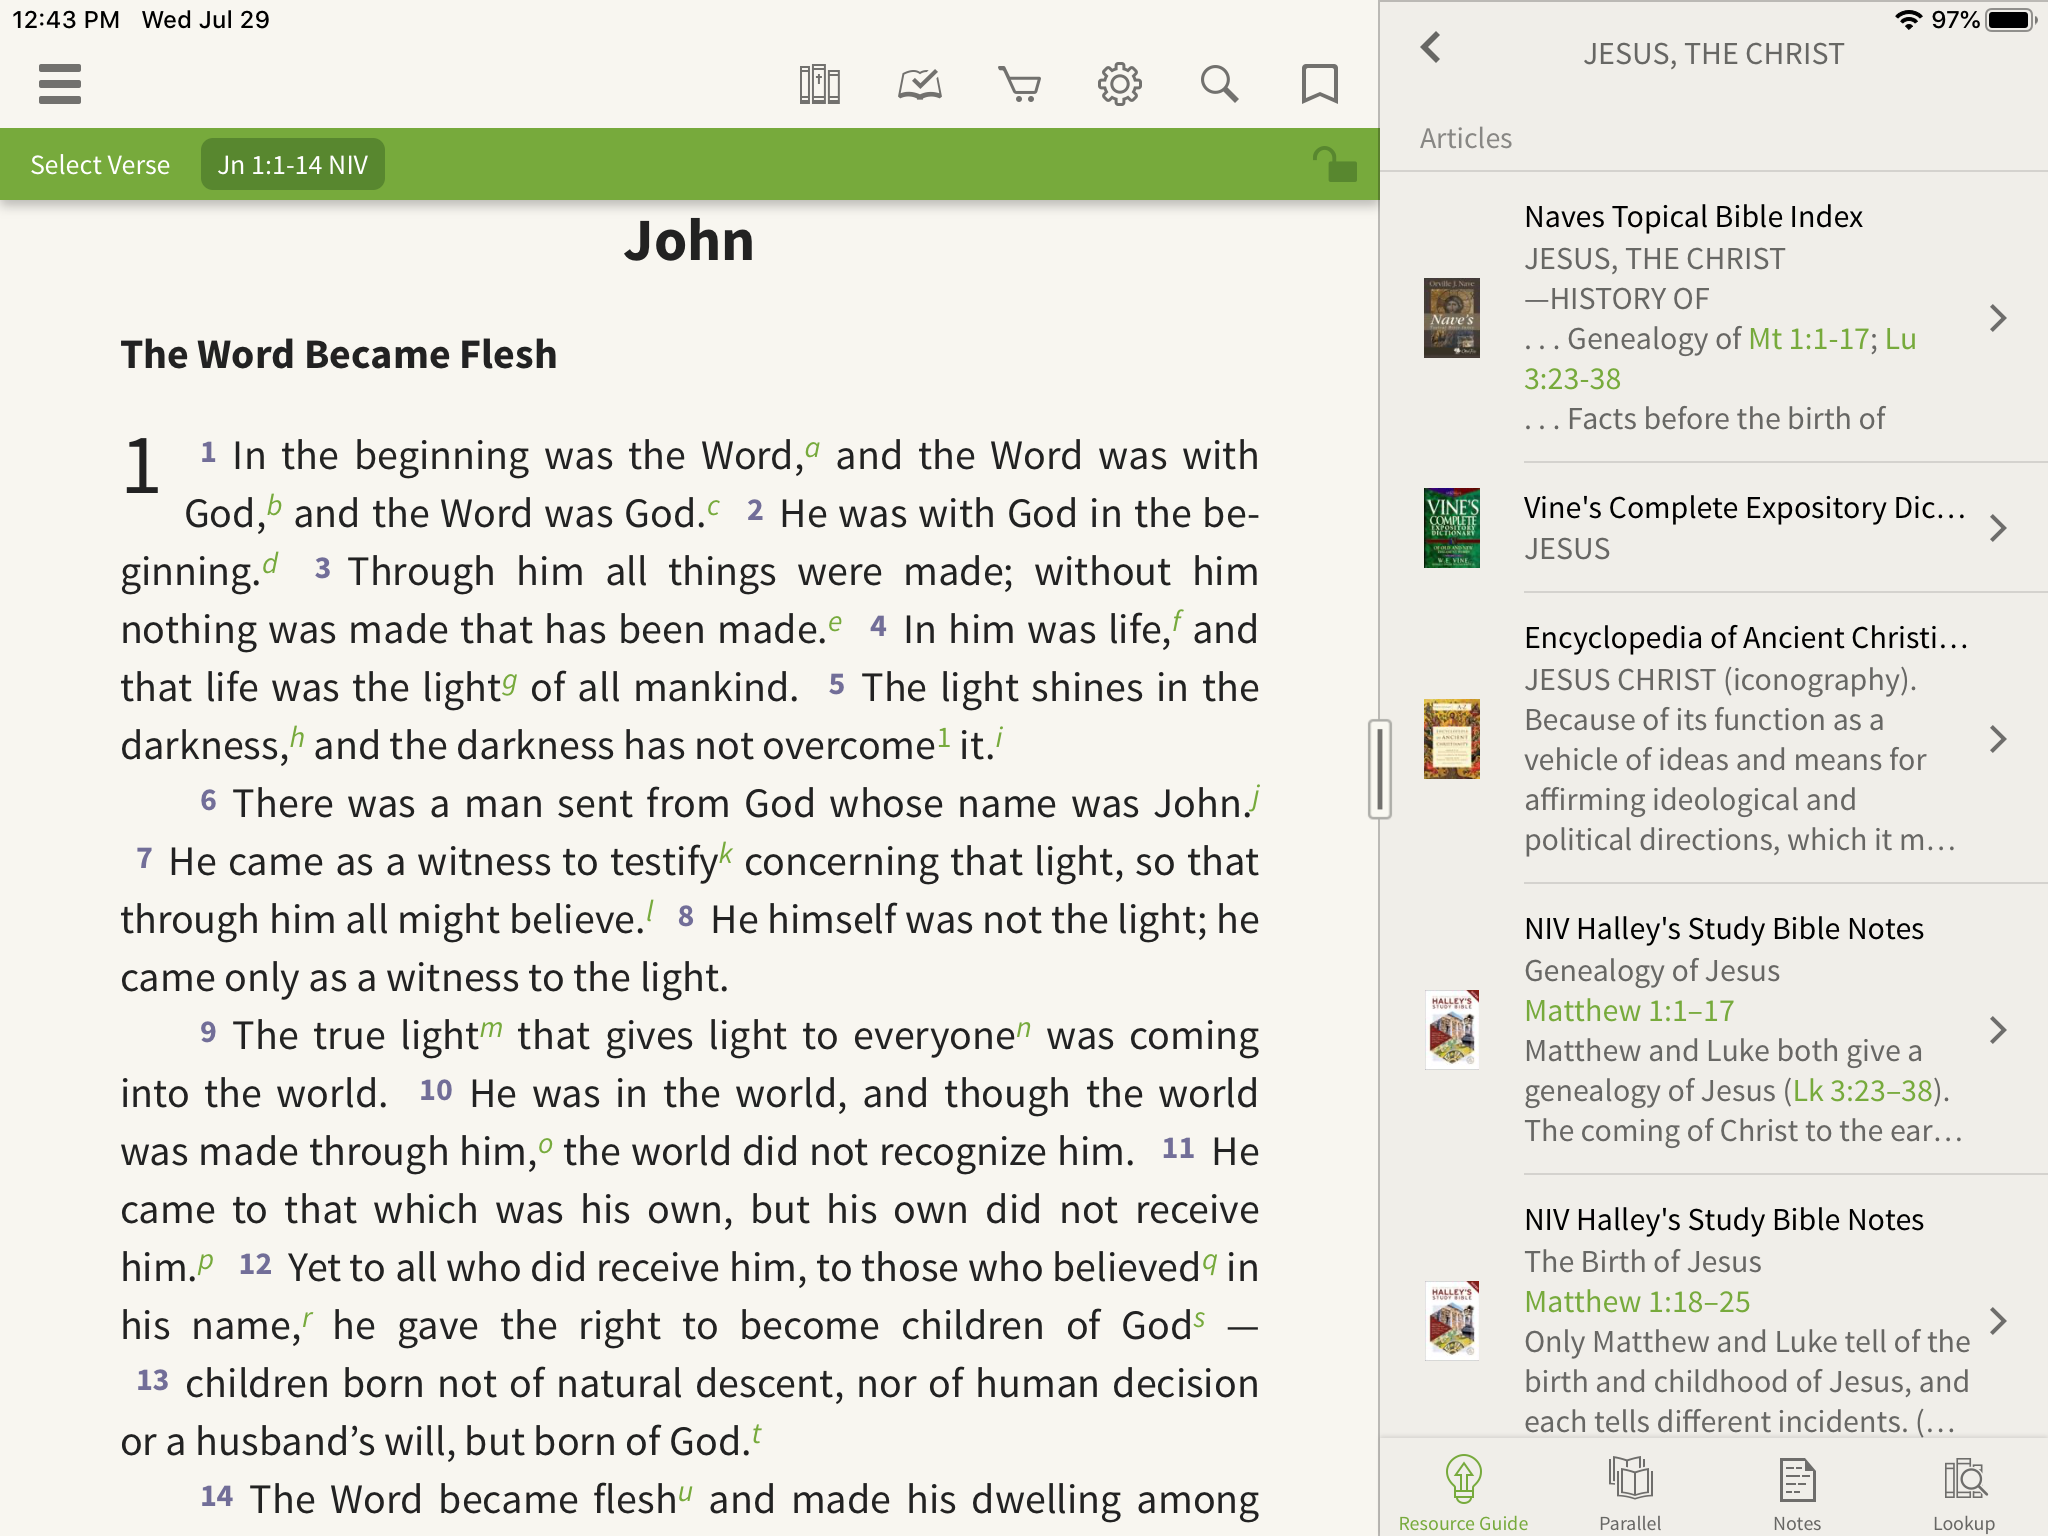 articles on Jesus in the resource guide